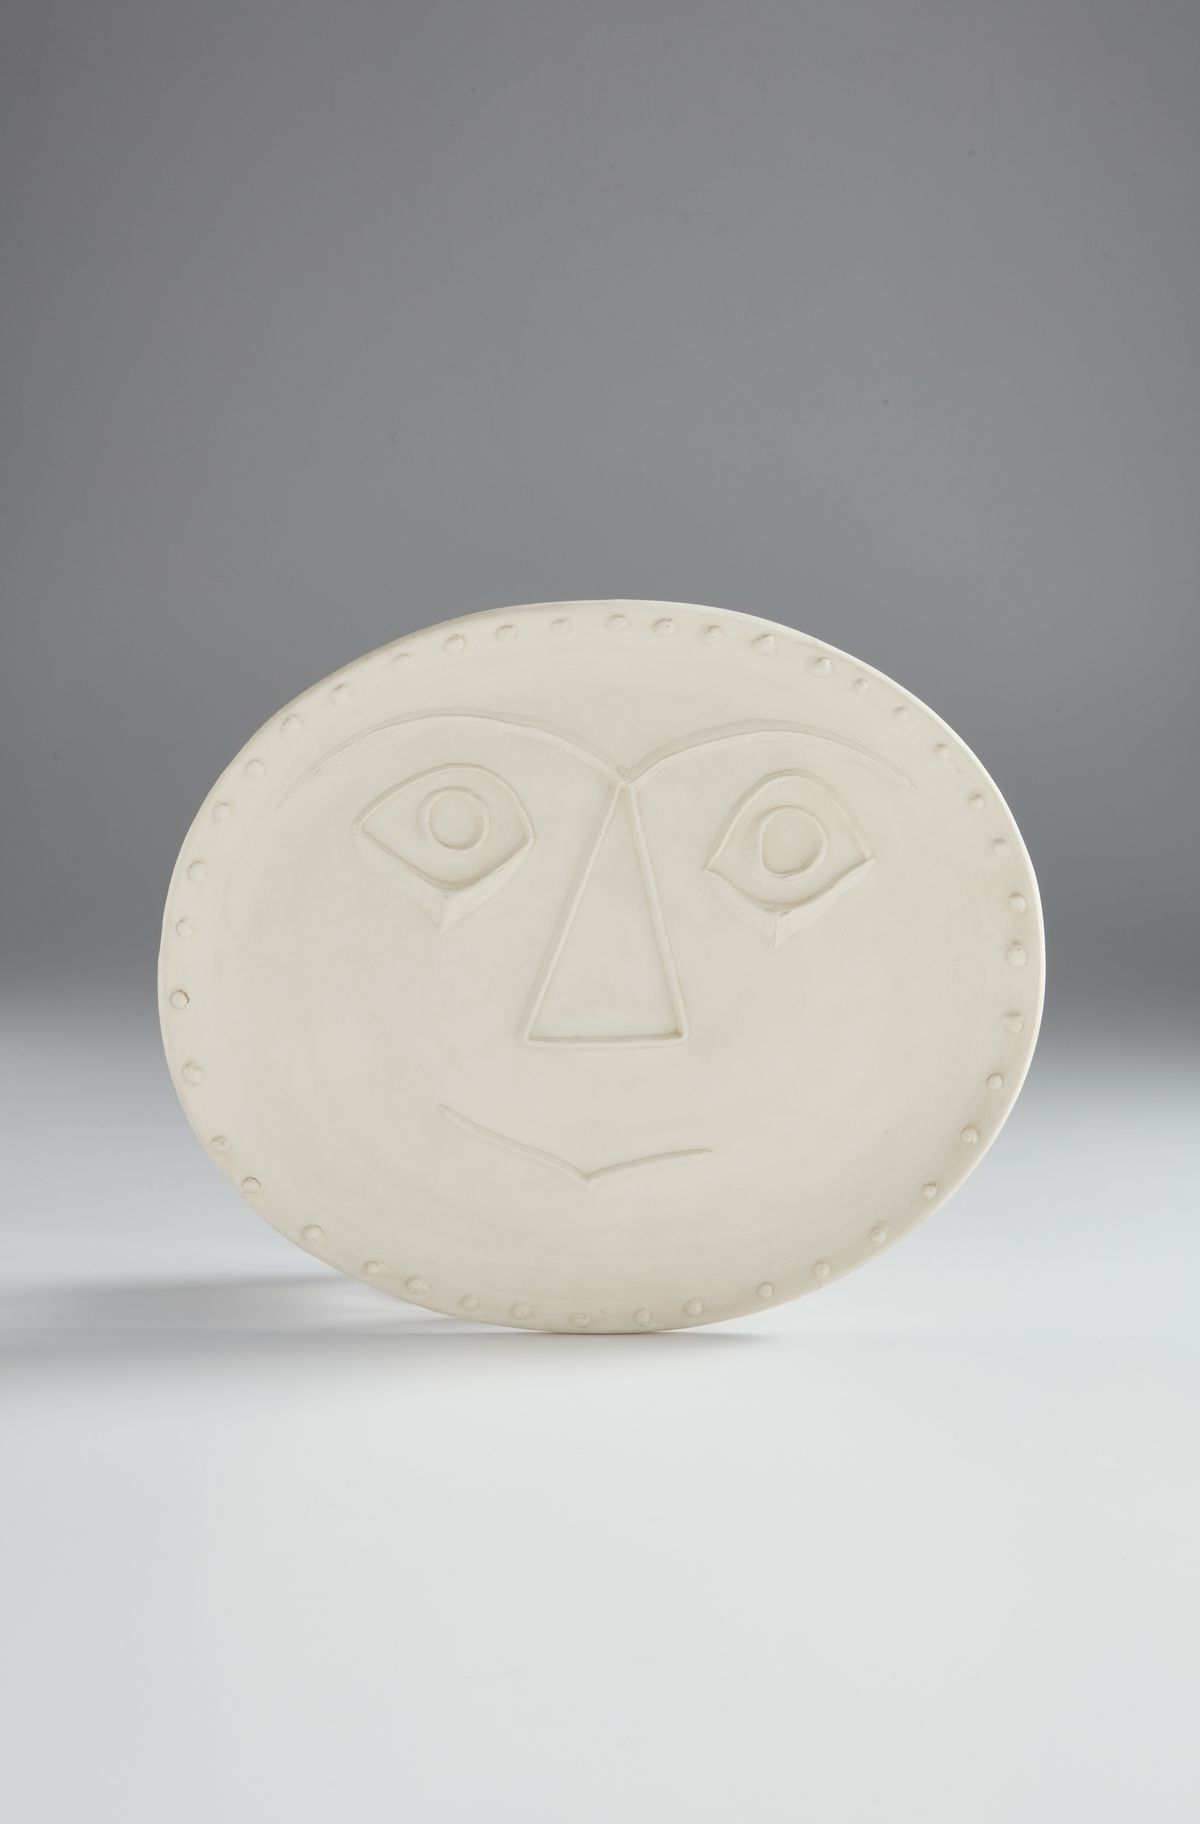 A white tablet with a face carved into it.